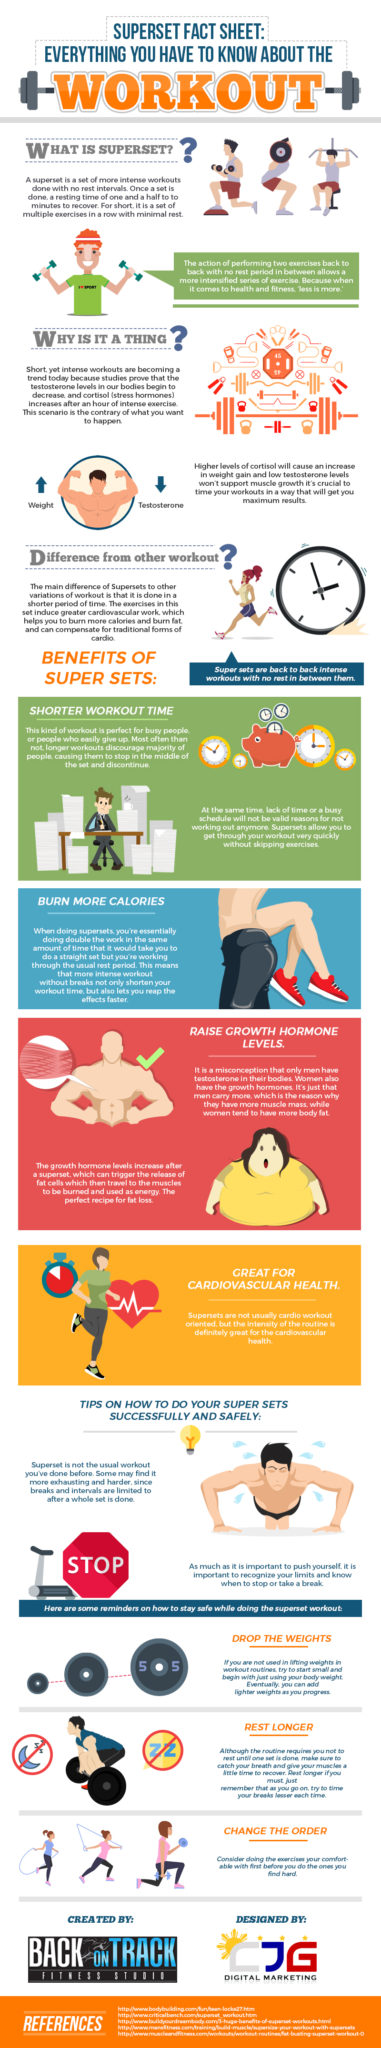 SUPERSET FACT SHEET Everything You Have To Know About The Workout (Infographic)